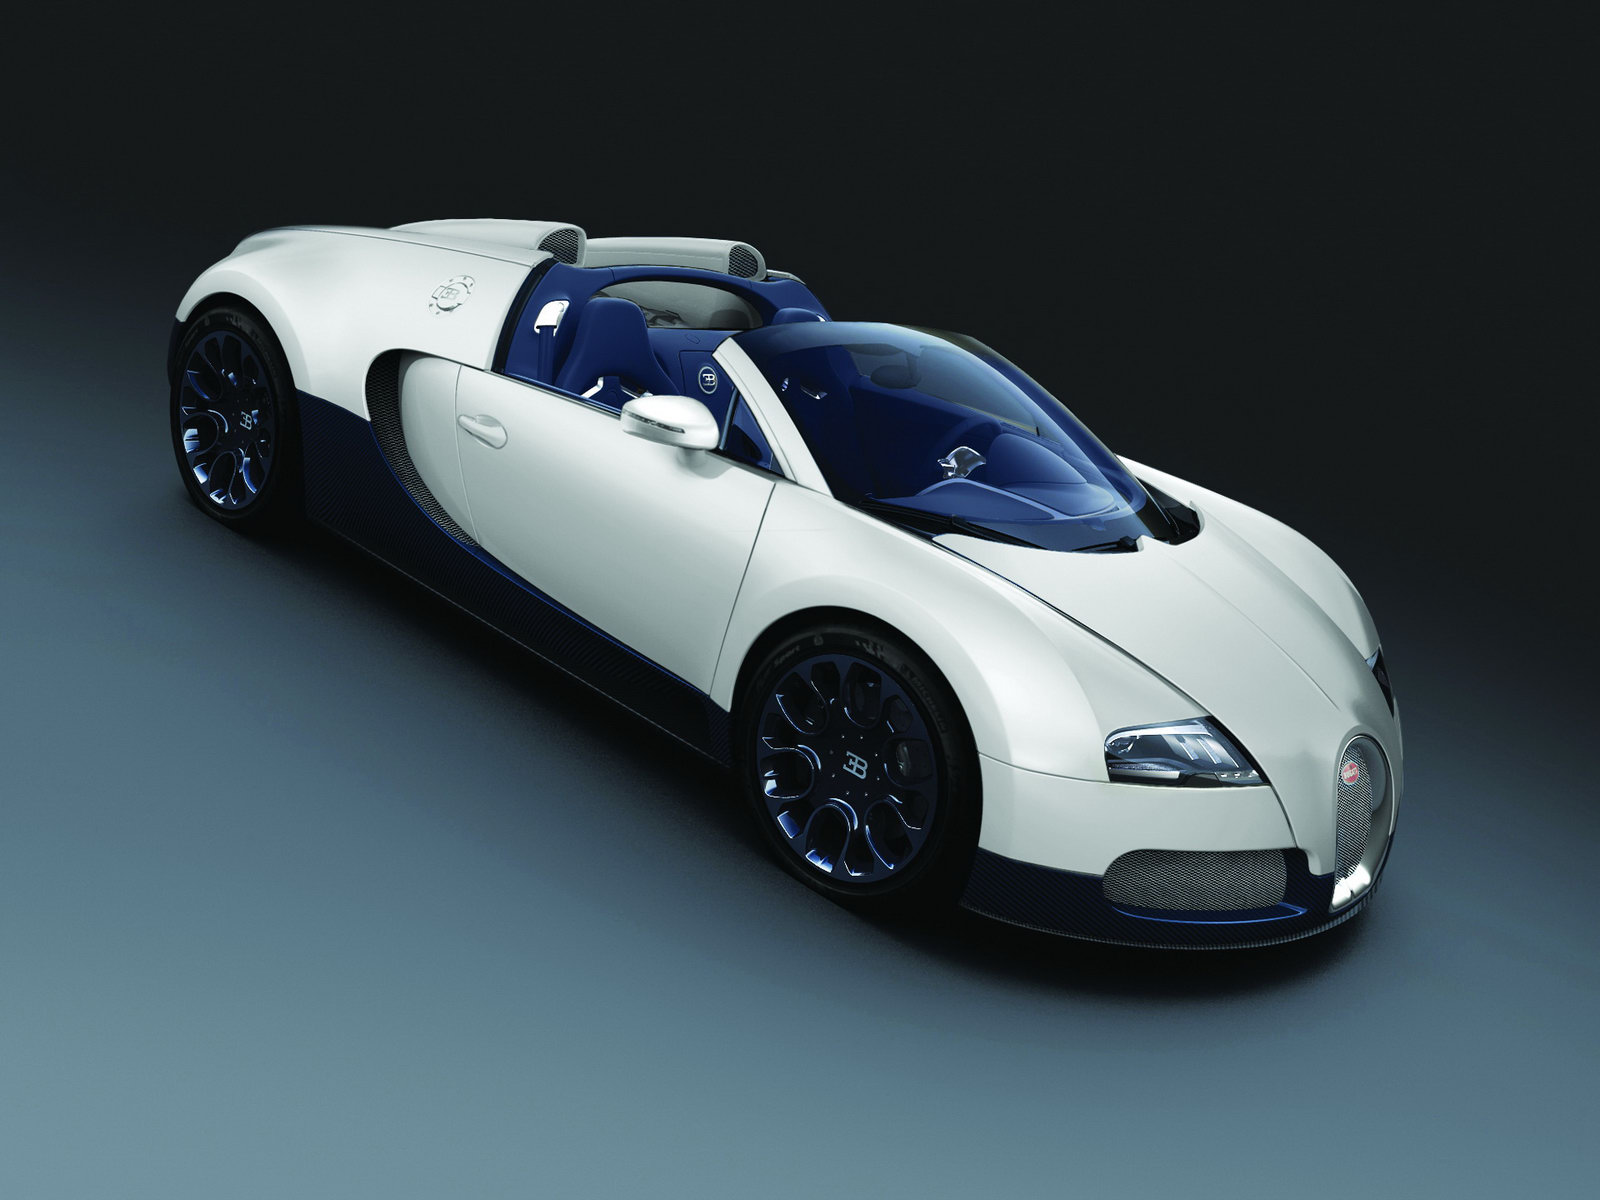 New Bugatti Bespoke Veyron Supercars shown up